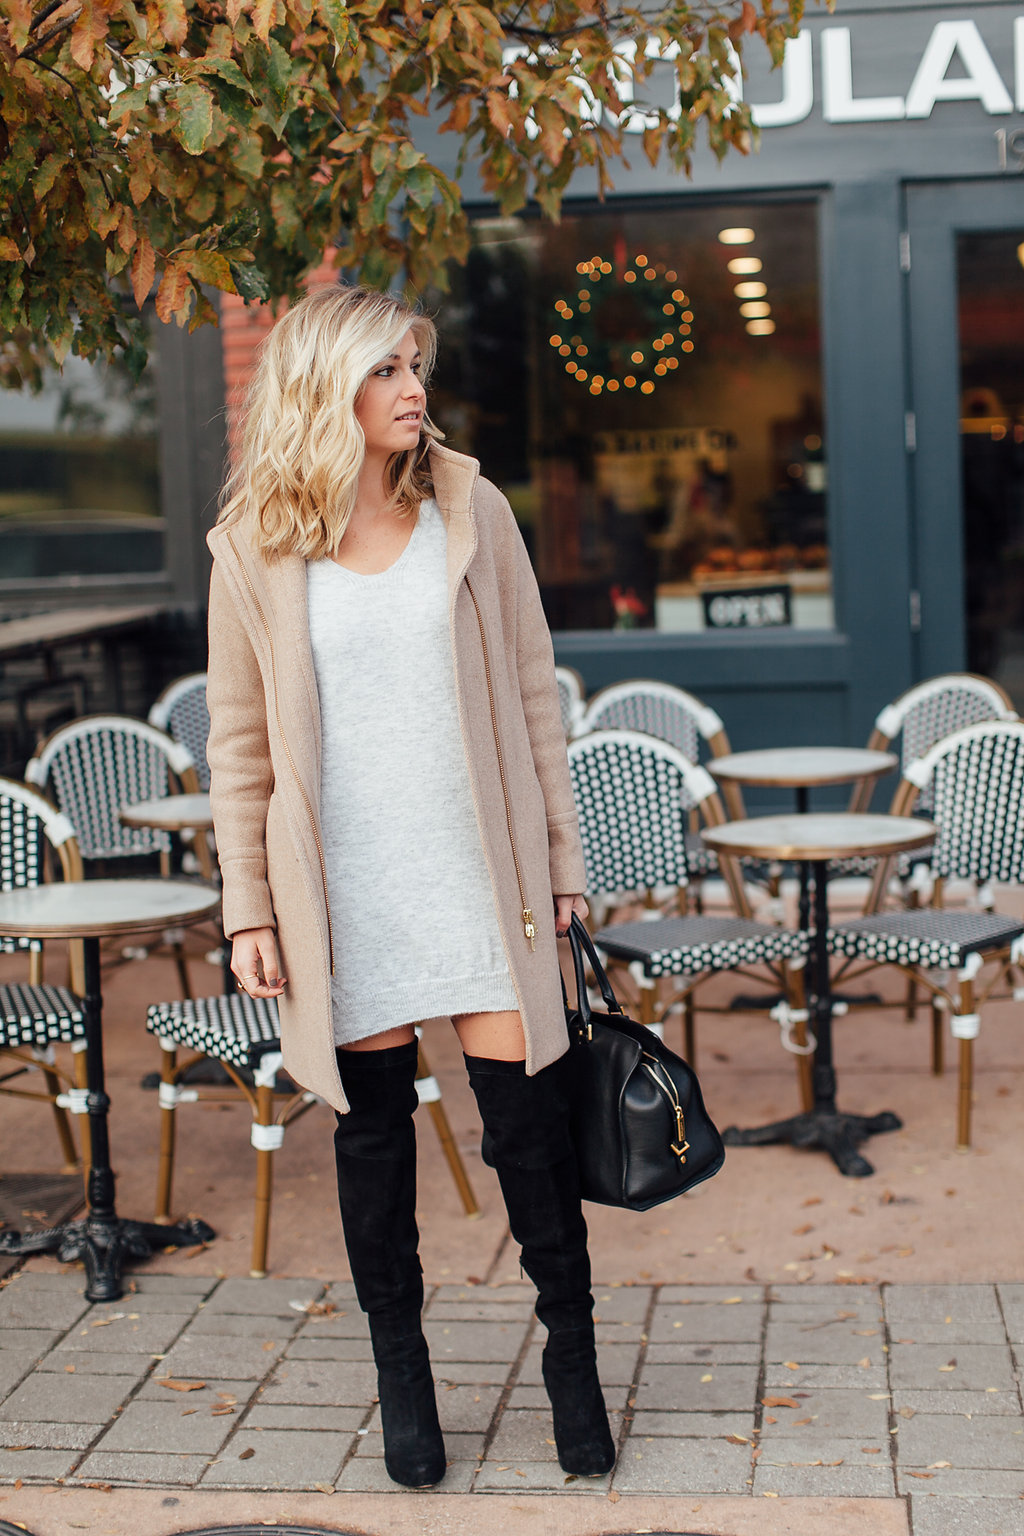 Black Sweater Dress Outfit Dress Images